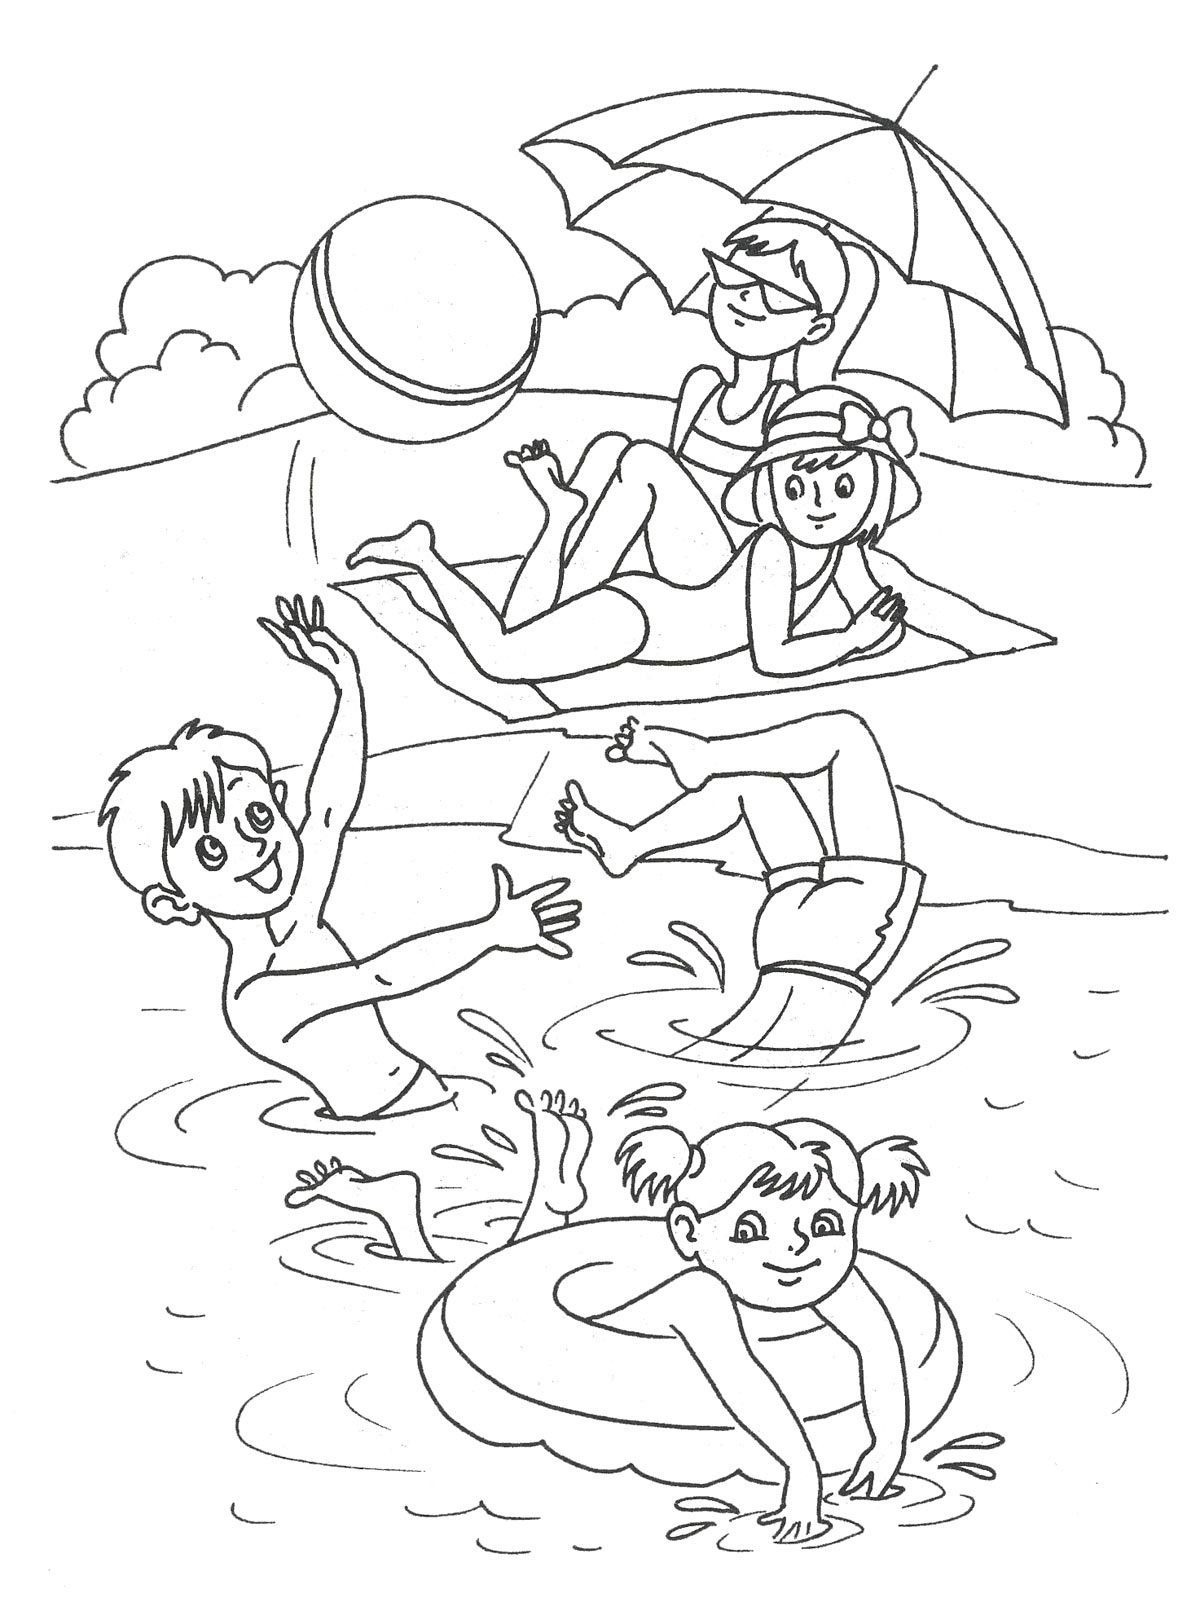 pin by peggy sullivan zakrzewski on coloring pages